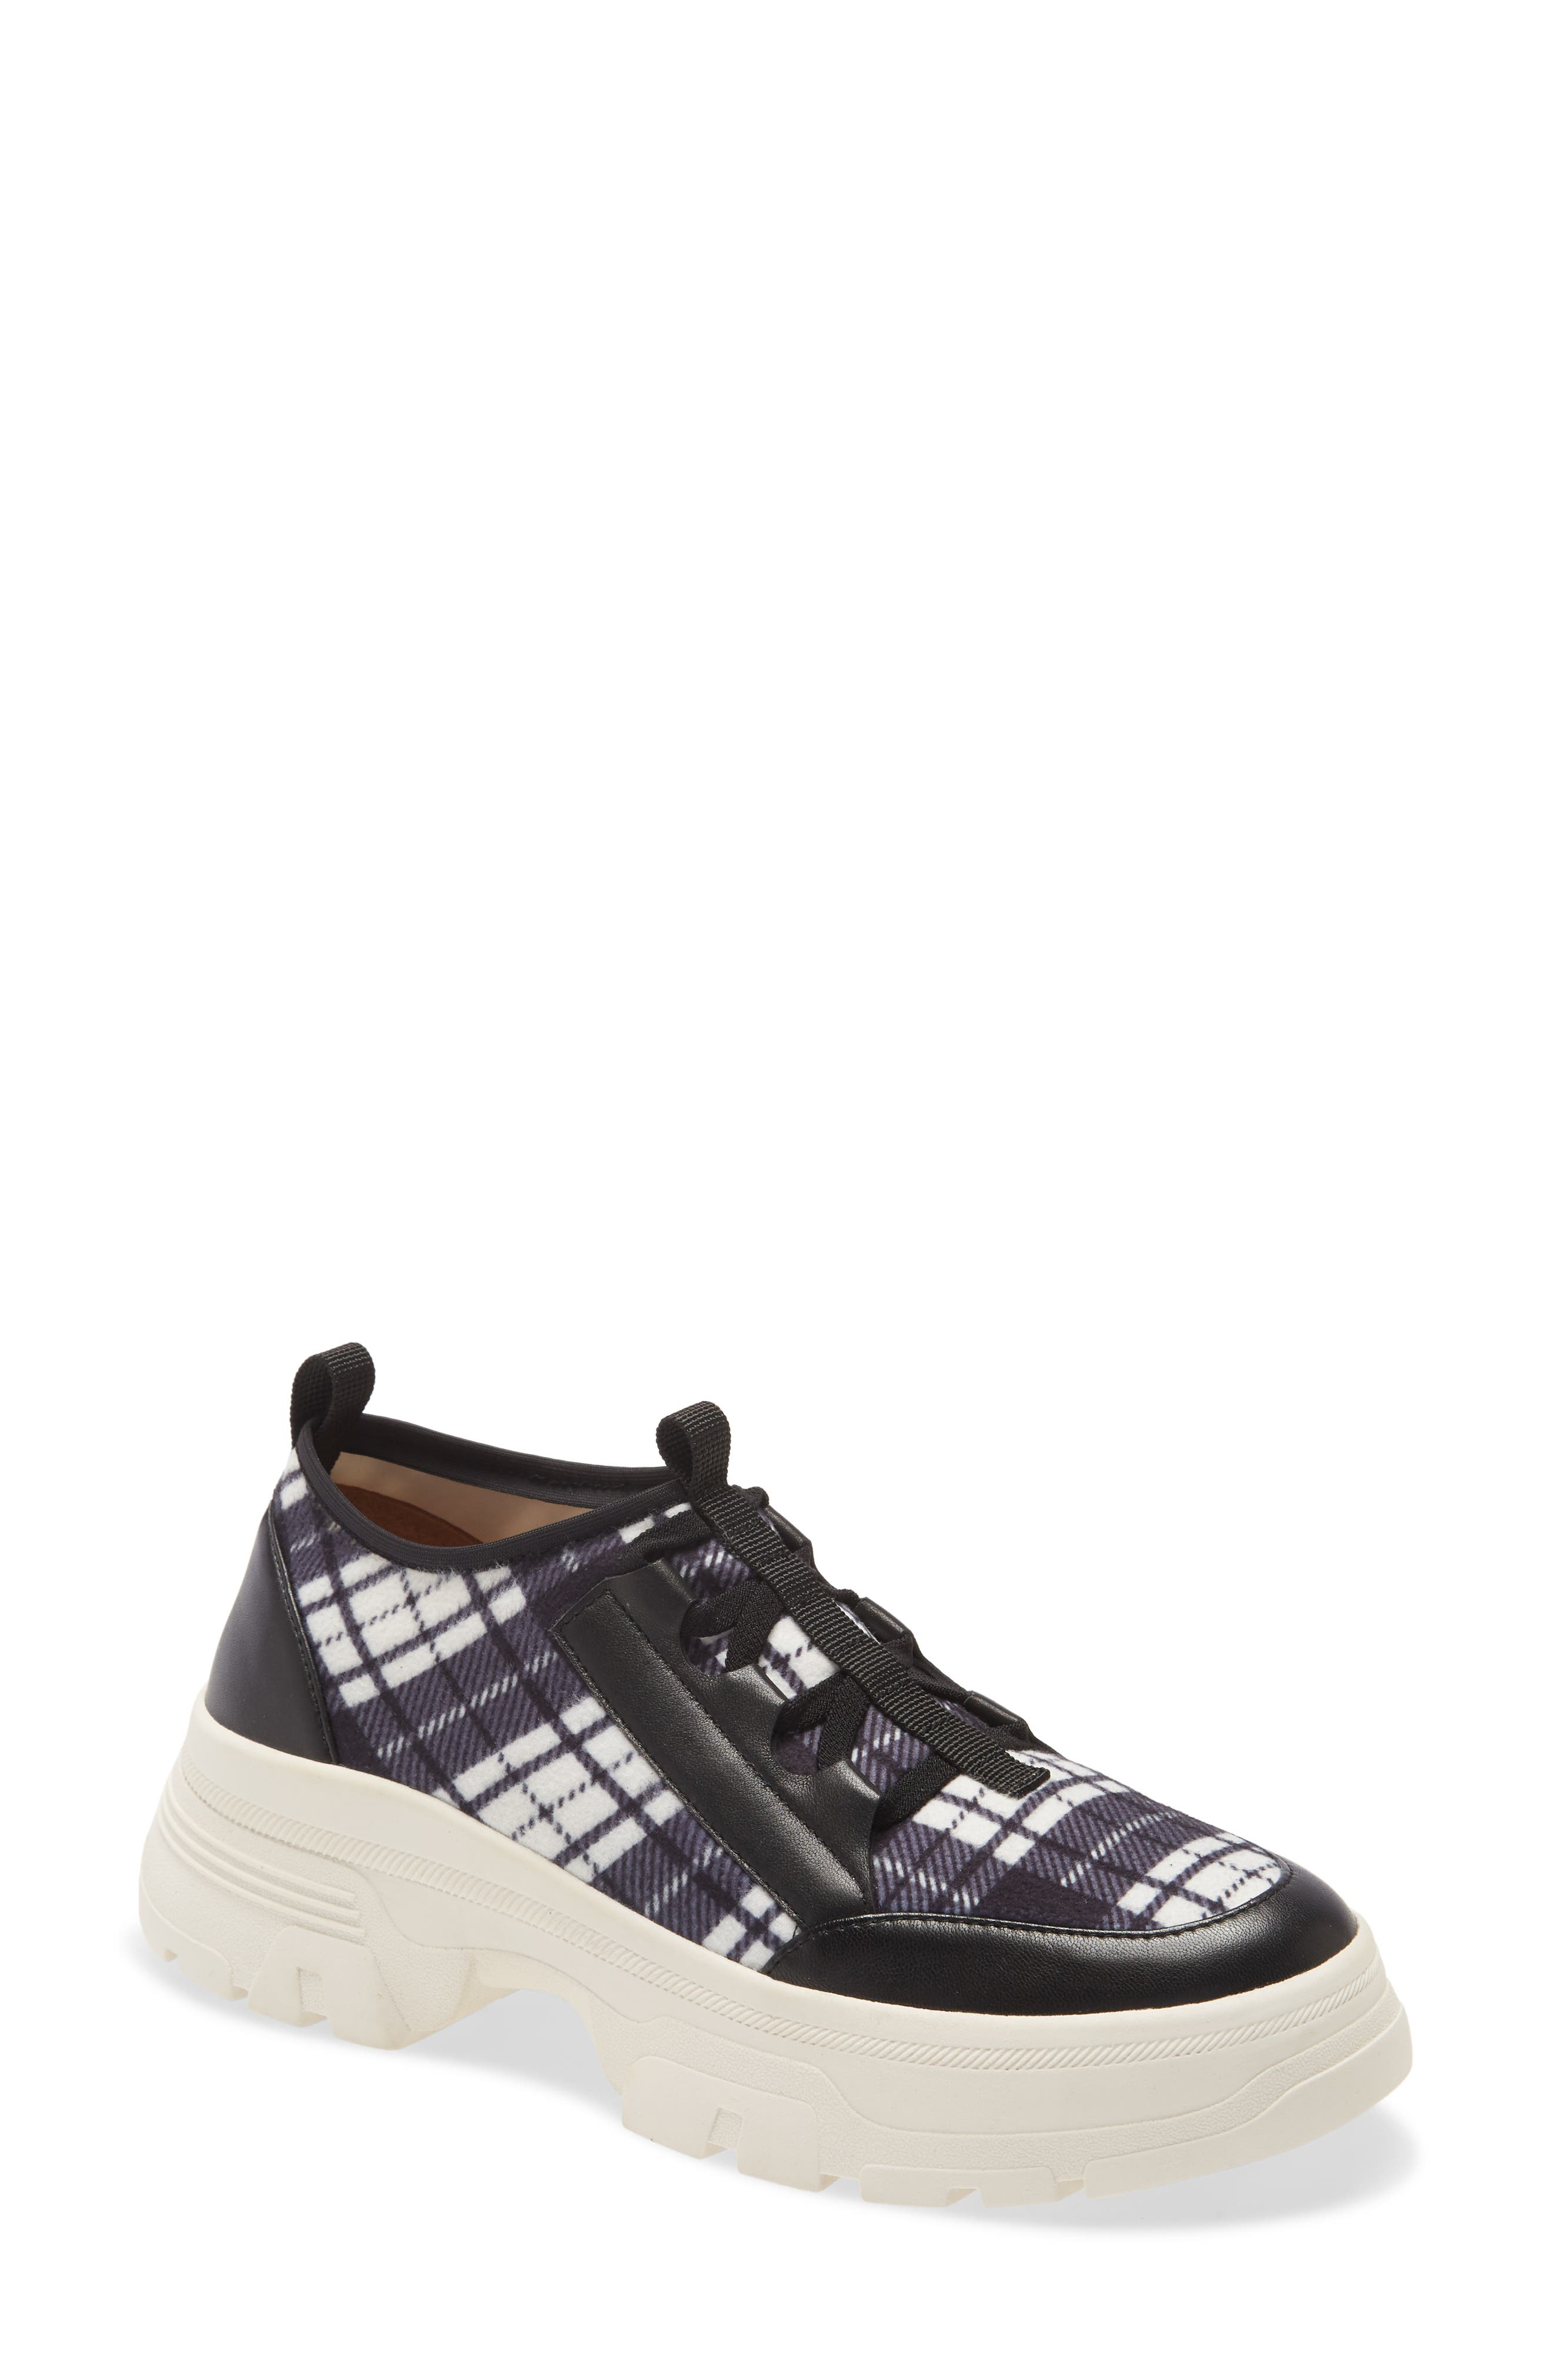 A foam-cushioned footbed helps keep feet comfortable as you take on city streets in a chic sneaker with a chunky rubber sole and an easy slip-on silhouette Style Name: Linea Paolo Rowen Sneaker (Women). Style Number: 6048031. Available in stores.